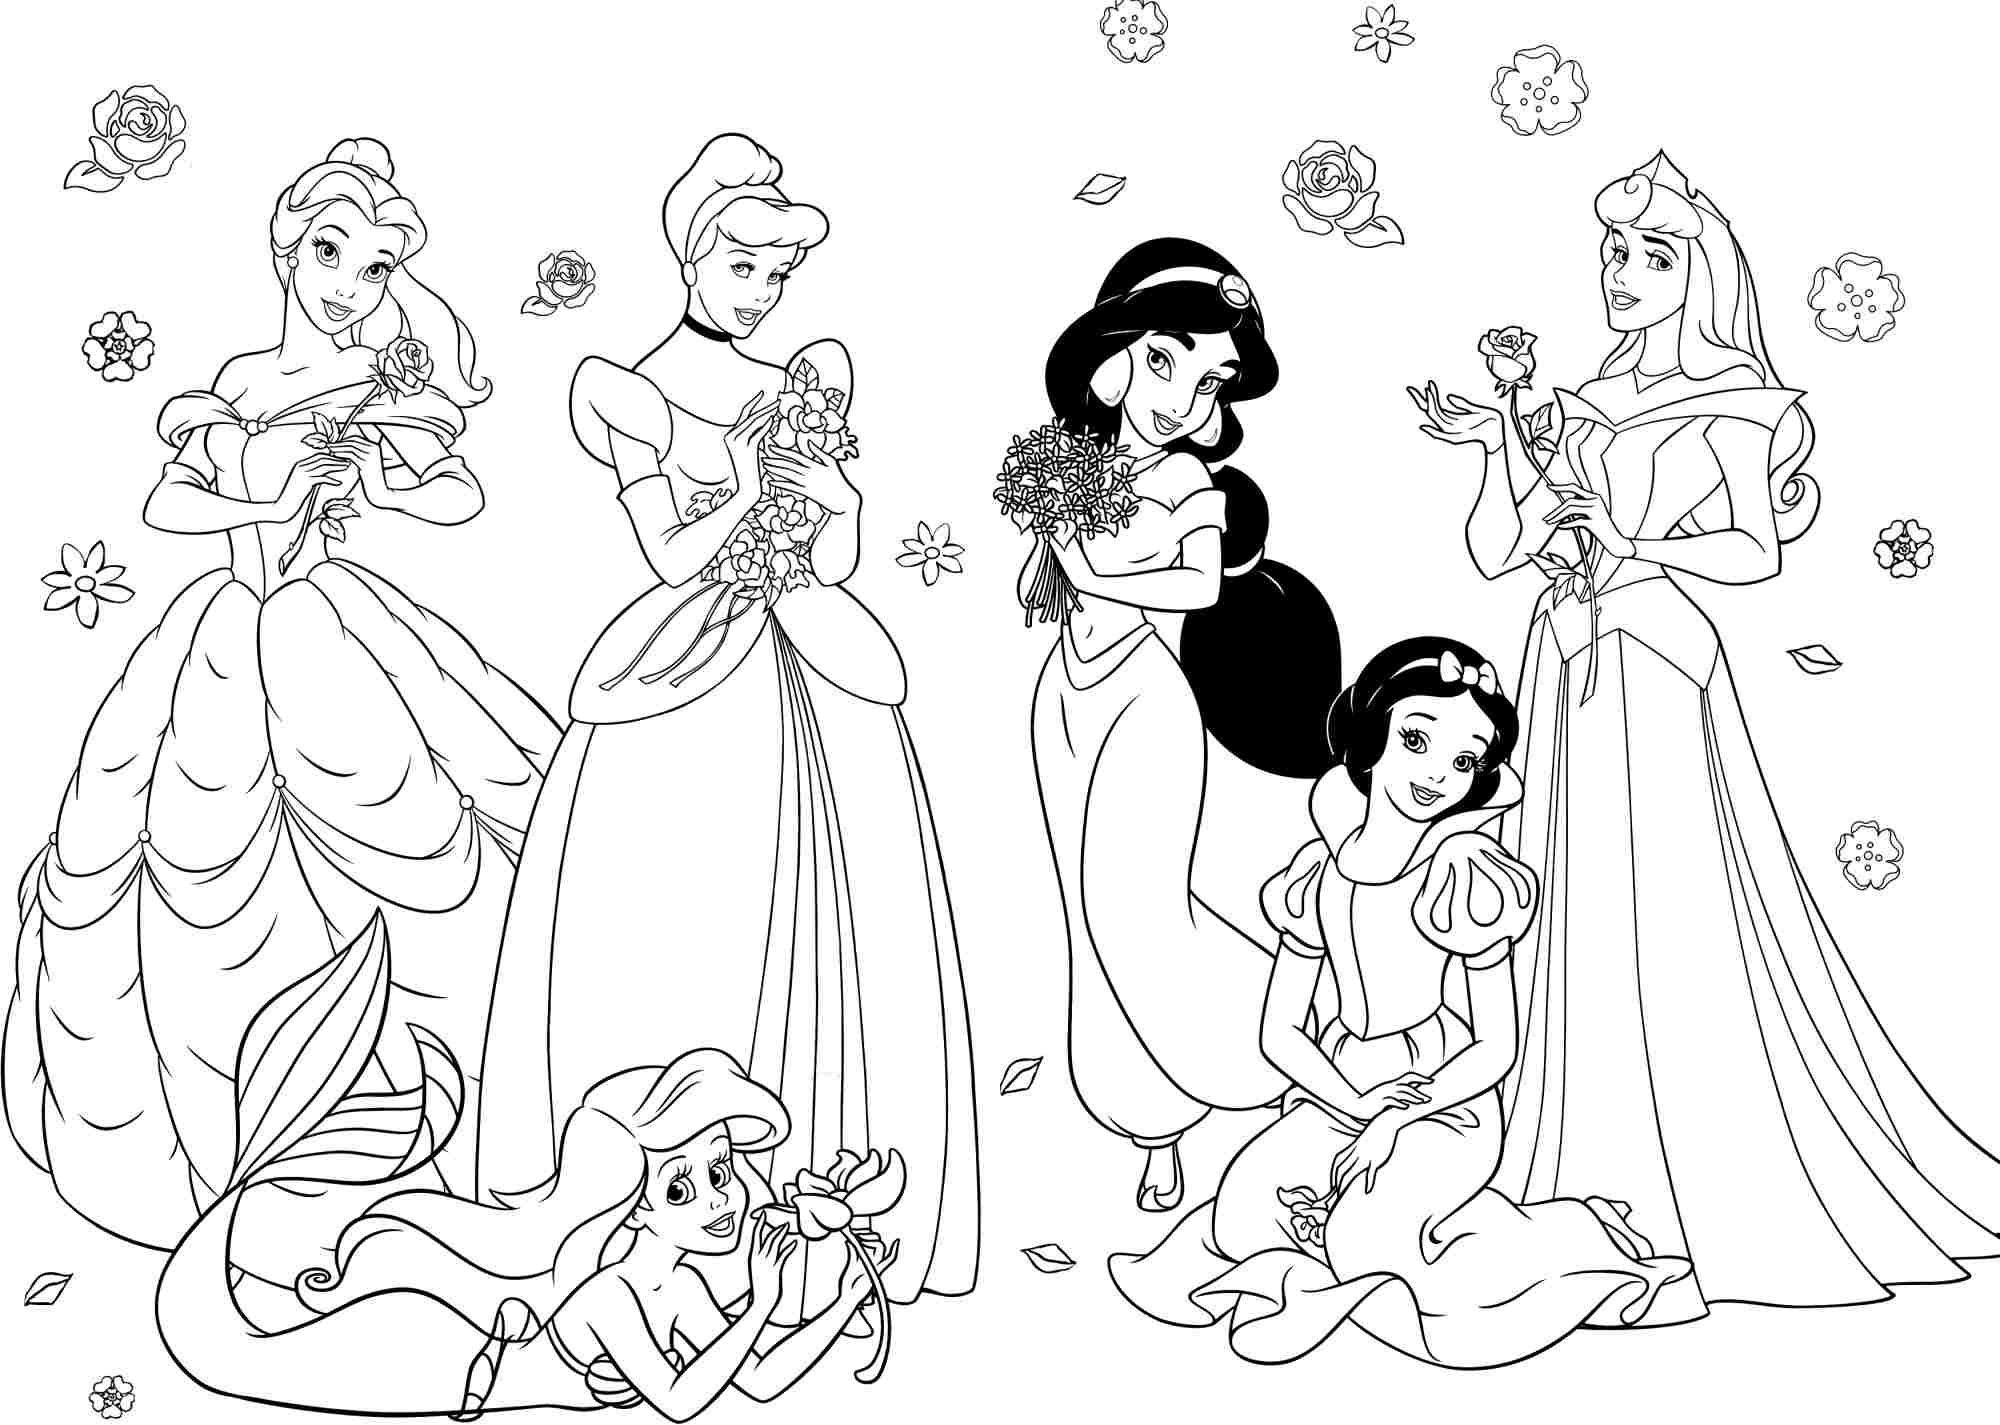 Free coloring disney princess pages - Princess Coloring Pages For Girls Free Large Images